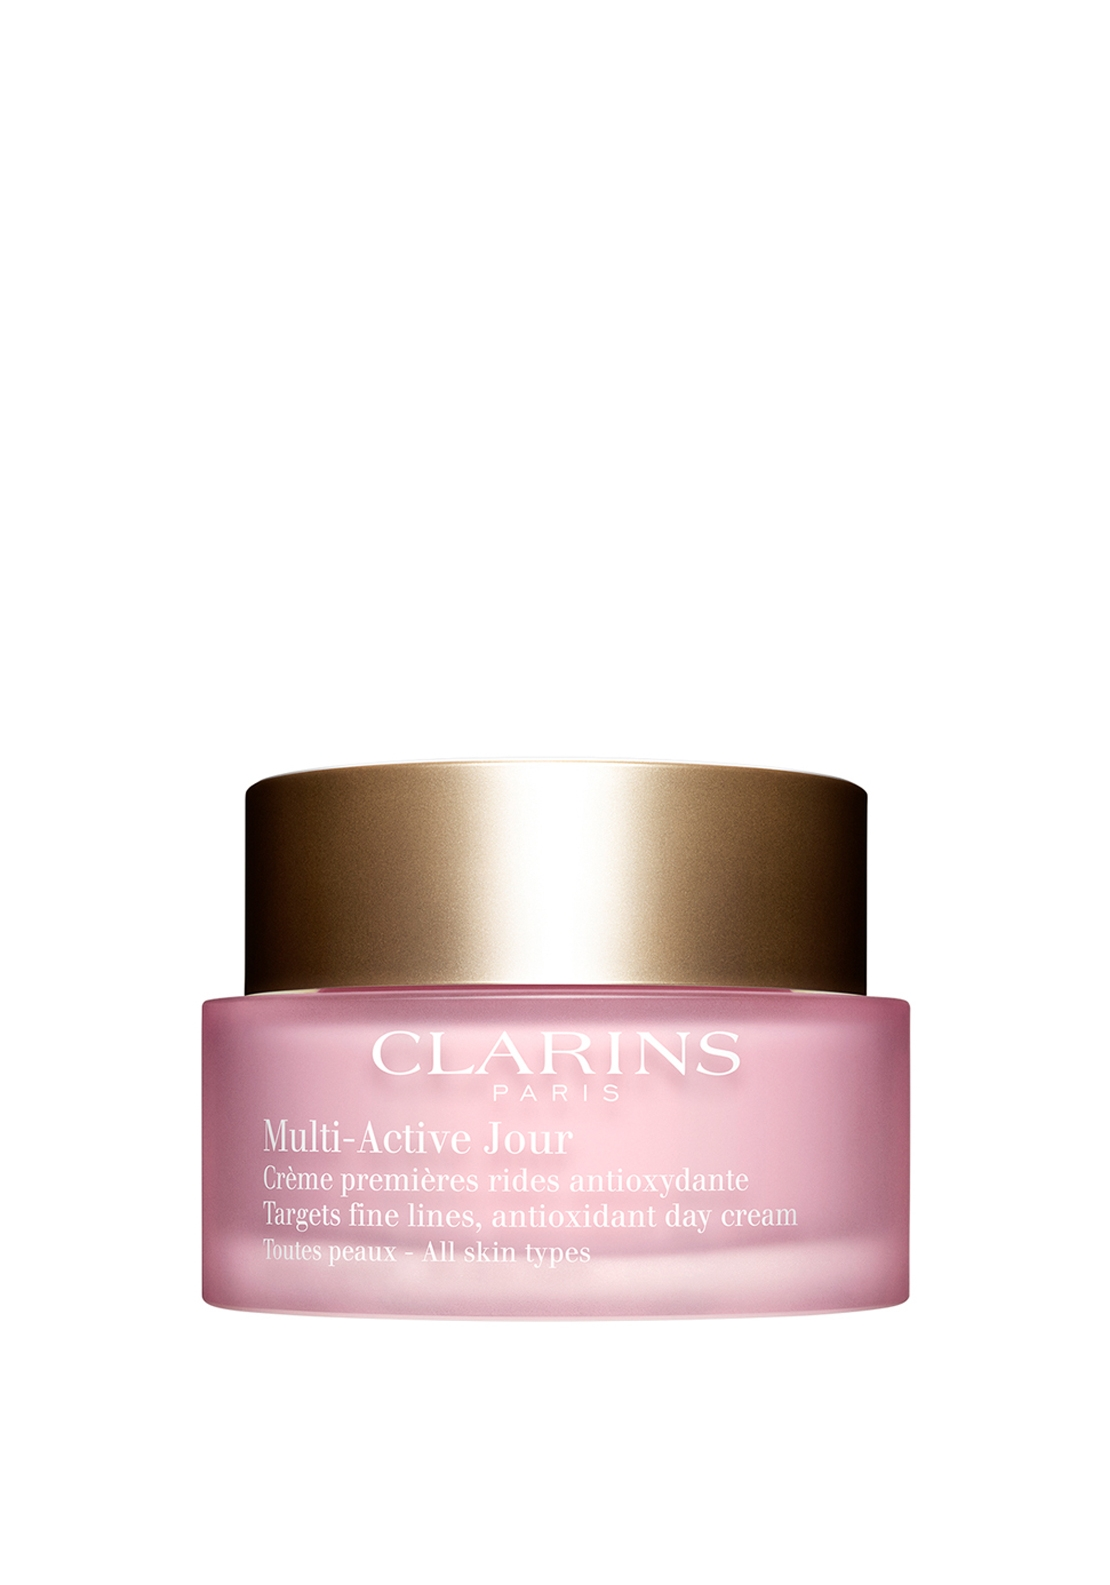 Clarins Gentle Multi-Active Day Cream – All Skin Types